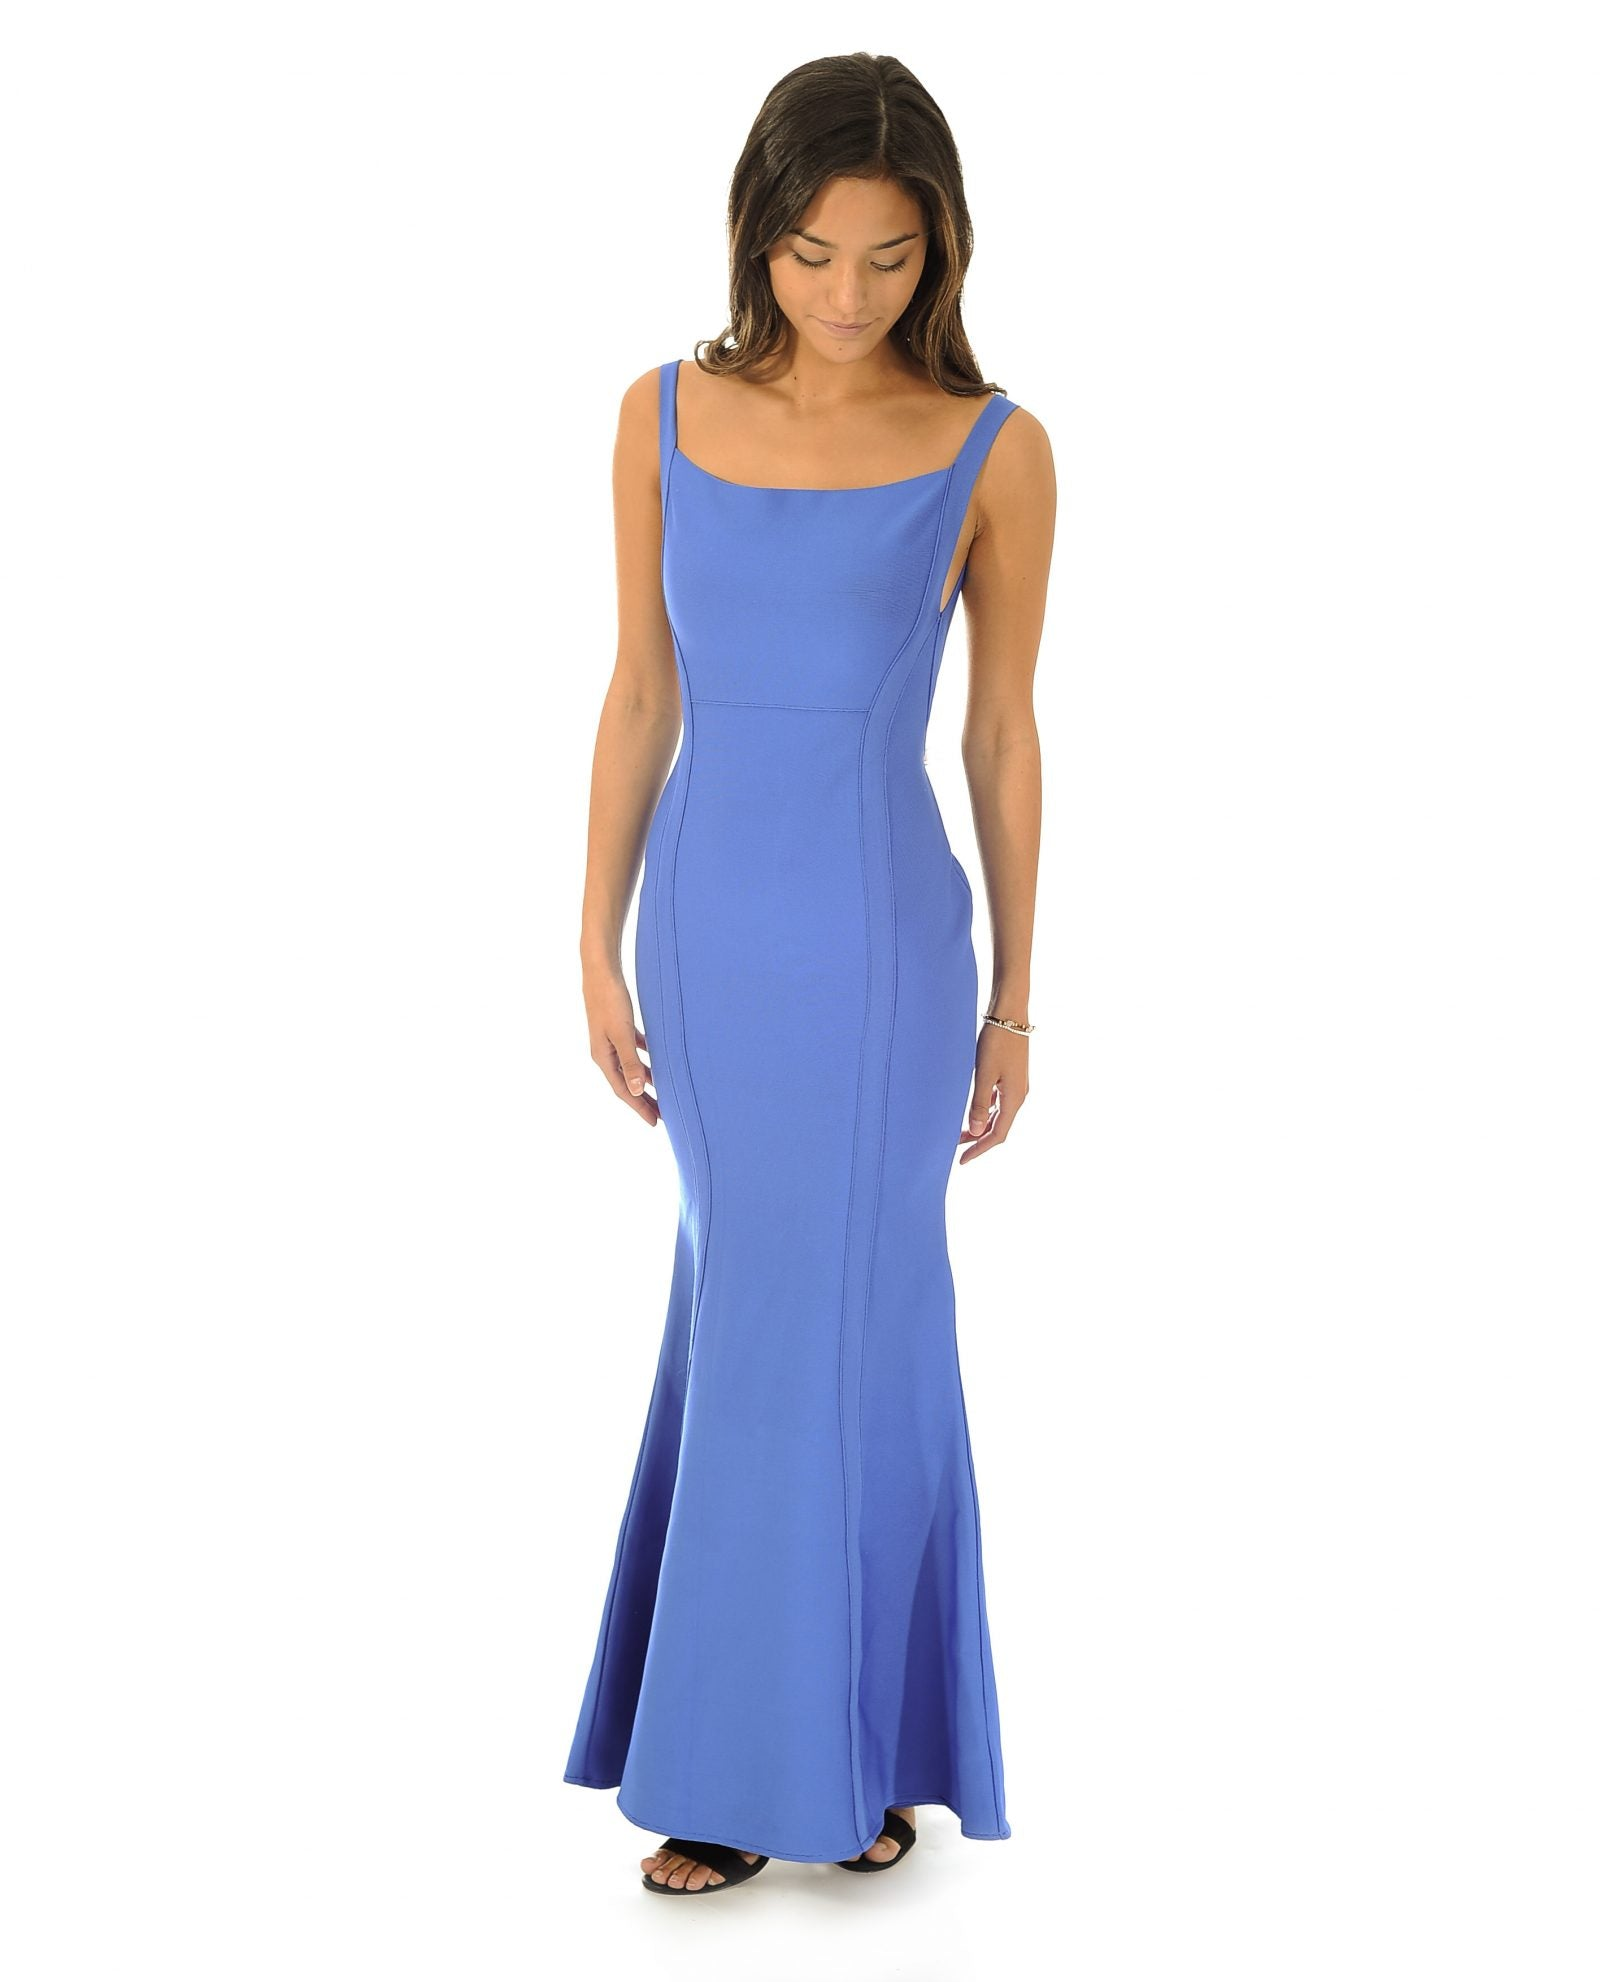 BLUE BODYCON MAXI DRESS WITH SCOOP BACK_AAA0604